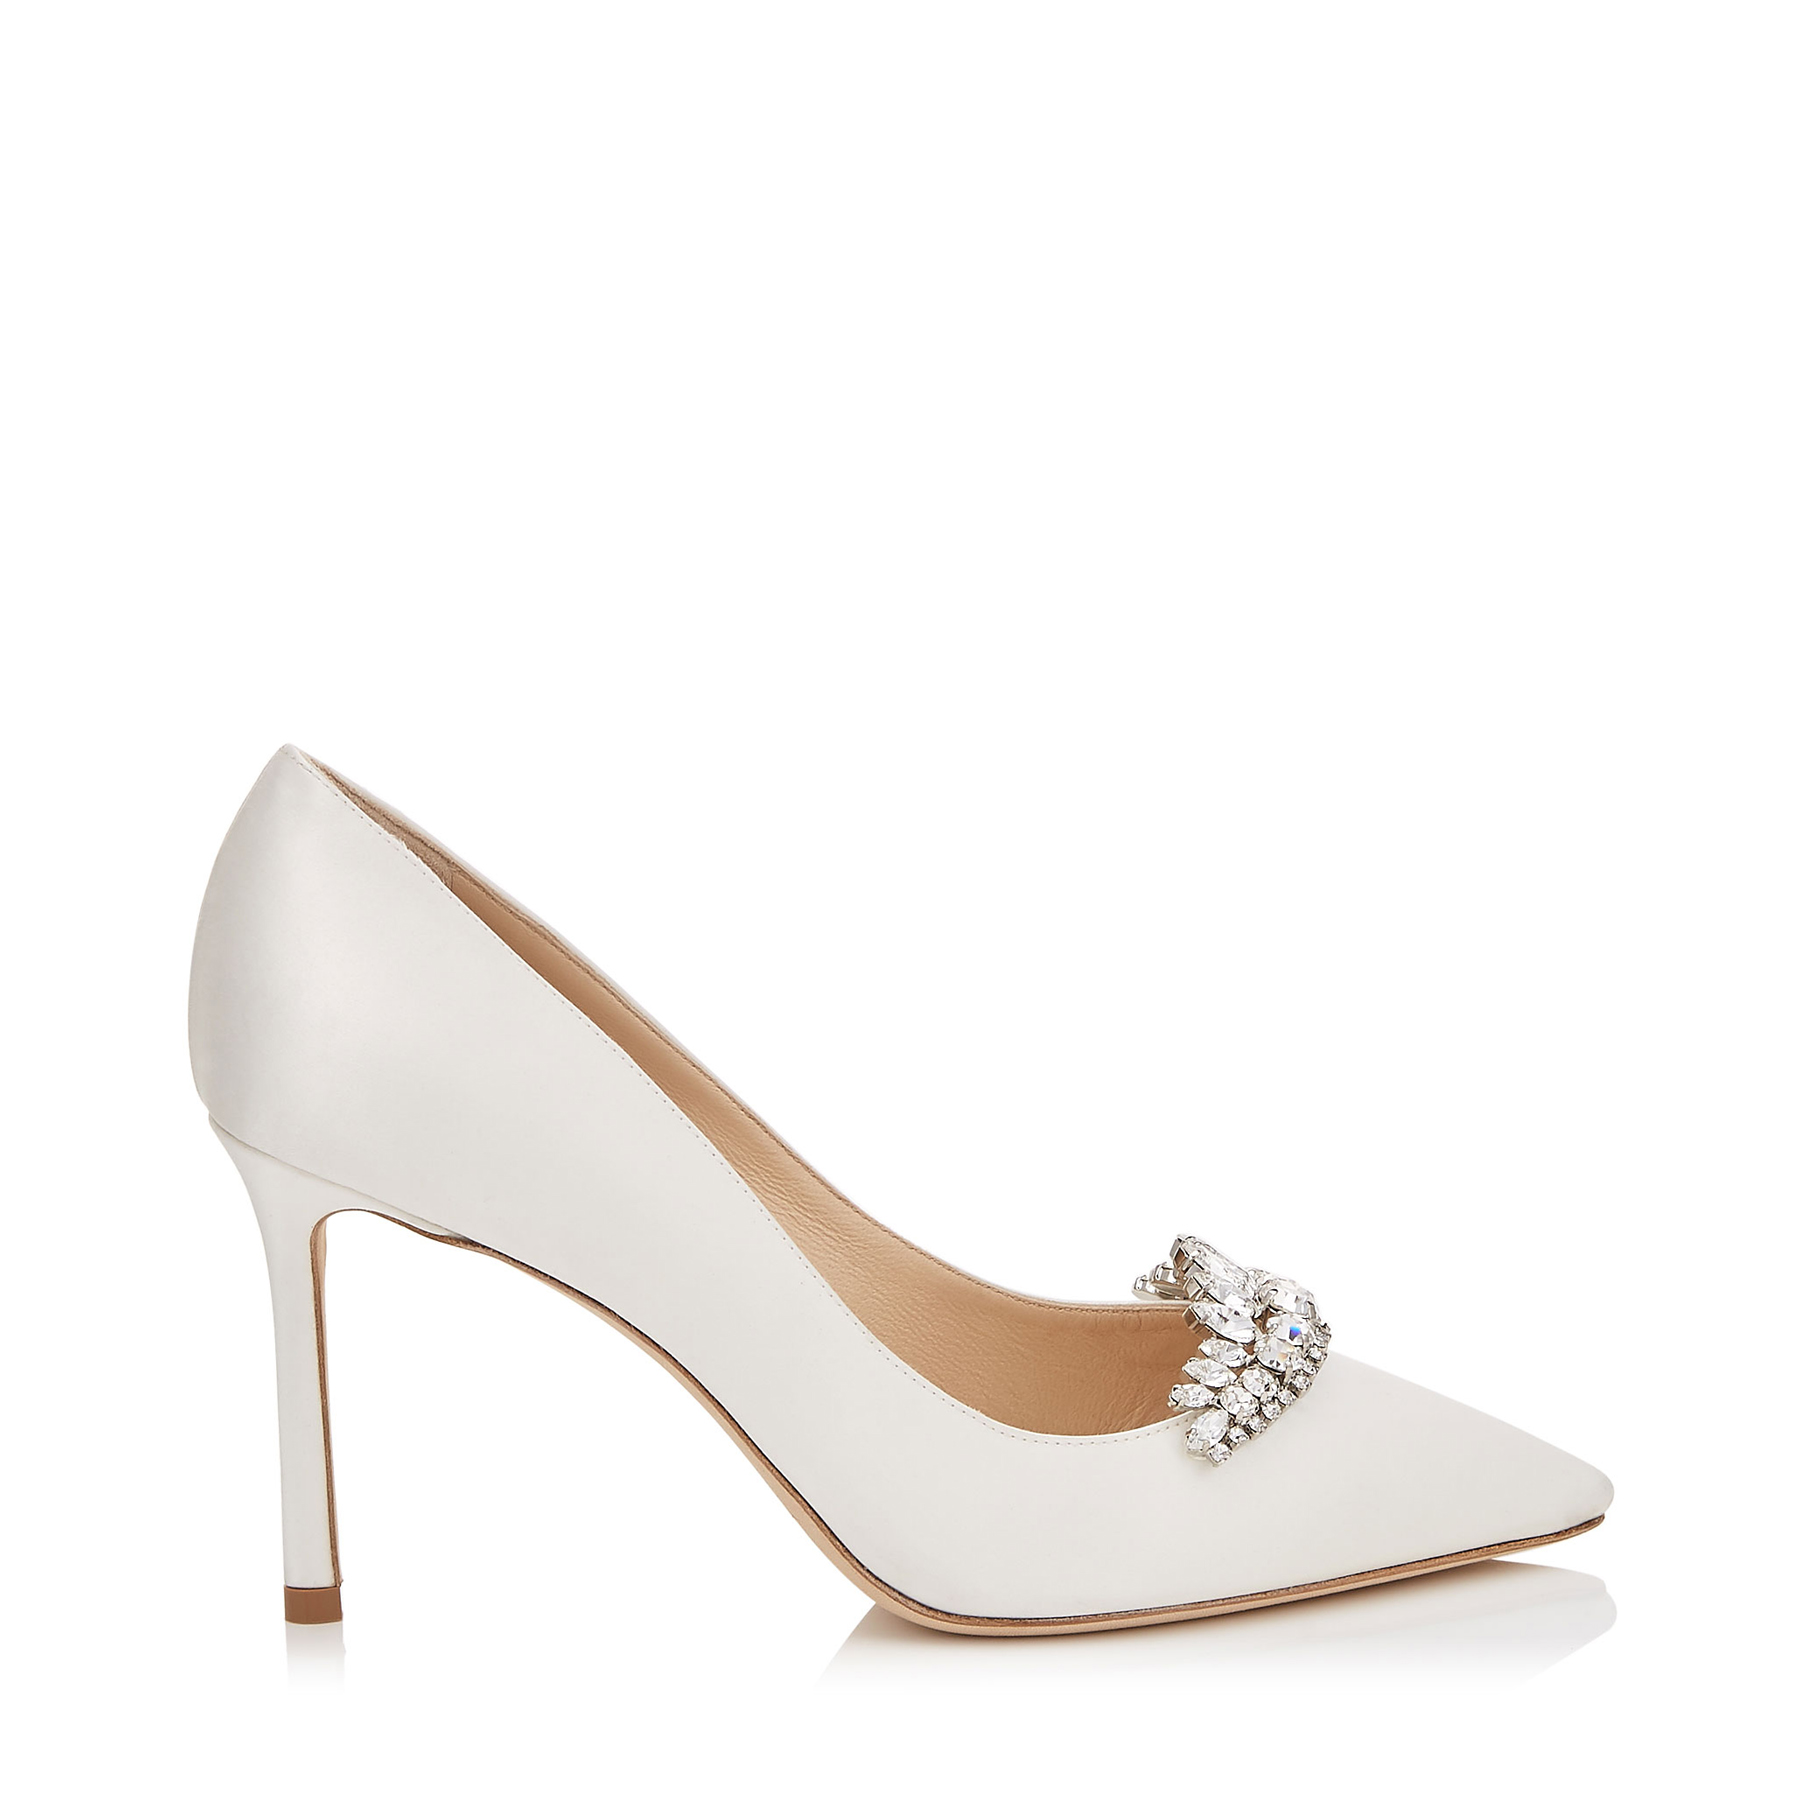 10f83aca9db88 ABEL Ivory Satin Pointy Toe Pumps with Crystal Detail by Jimmy Choo ...